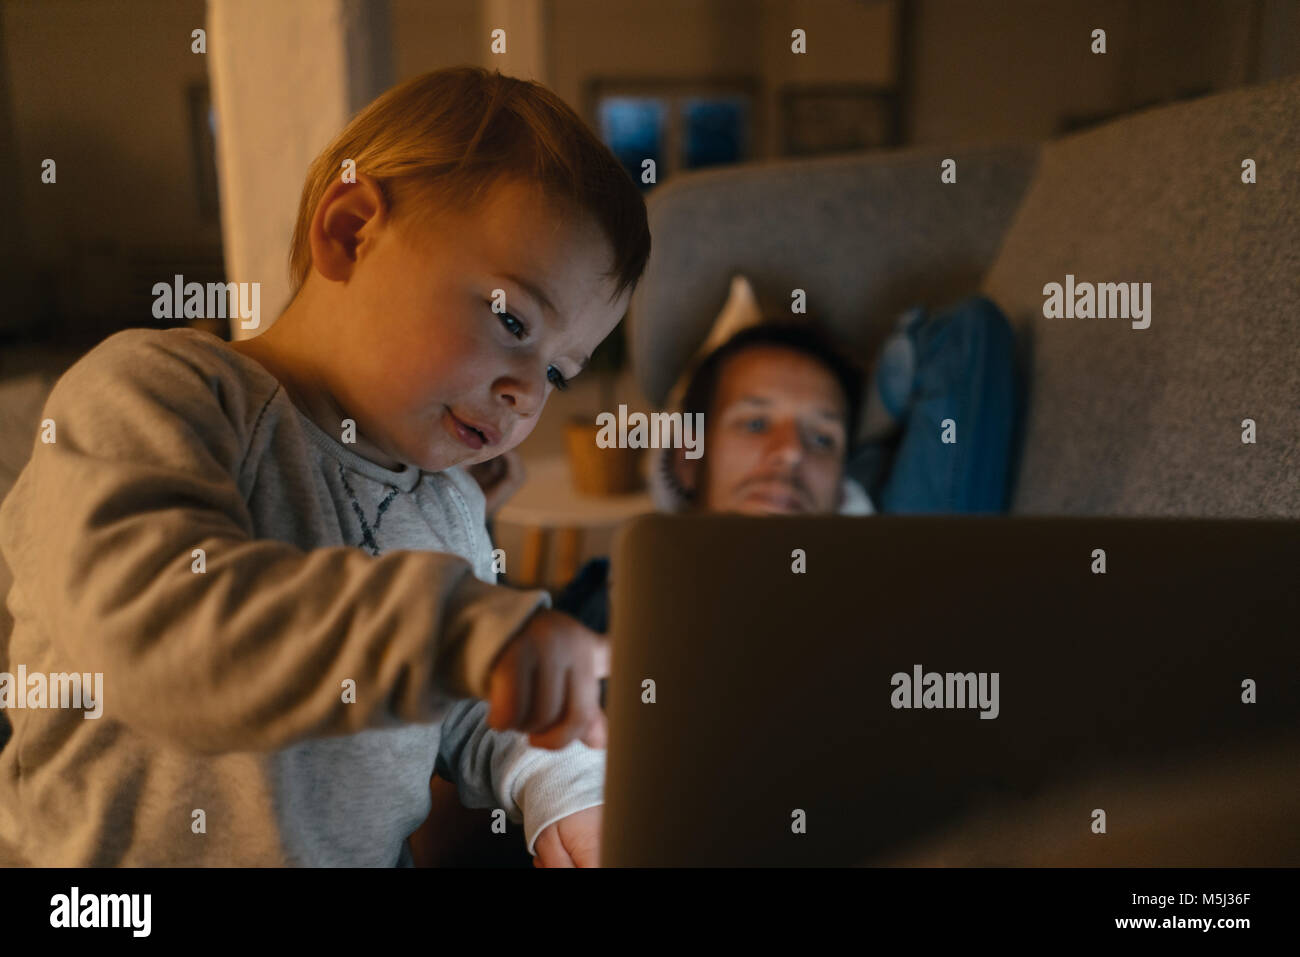 Litle girl with parents looking at laptop on the couch in the dark - Stock Image